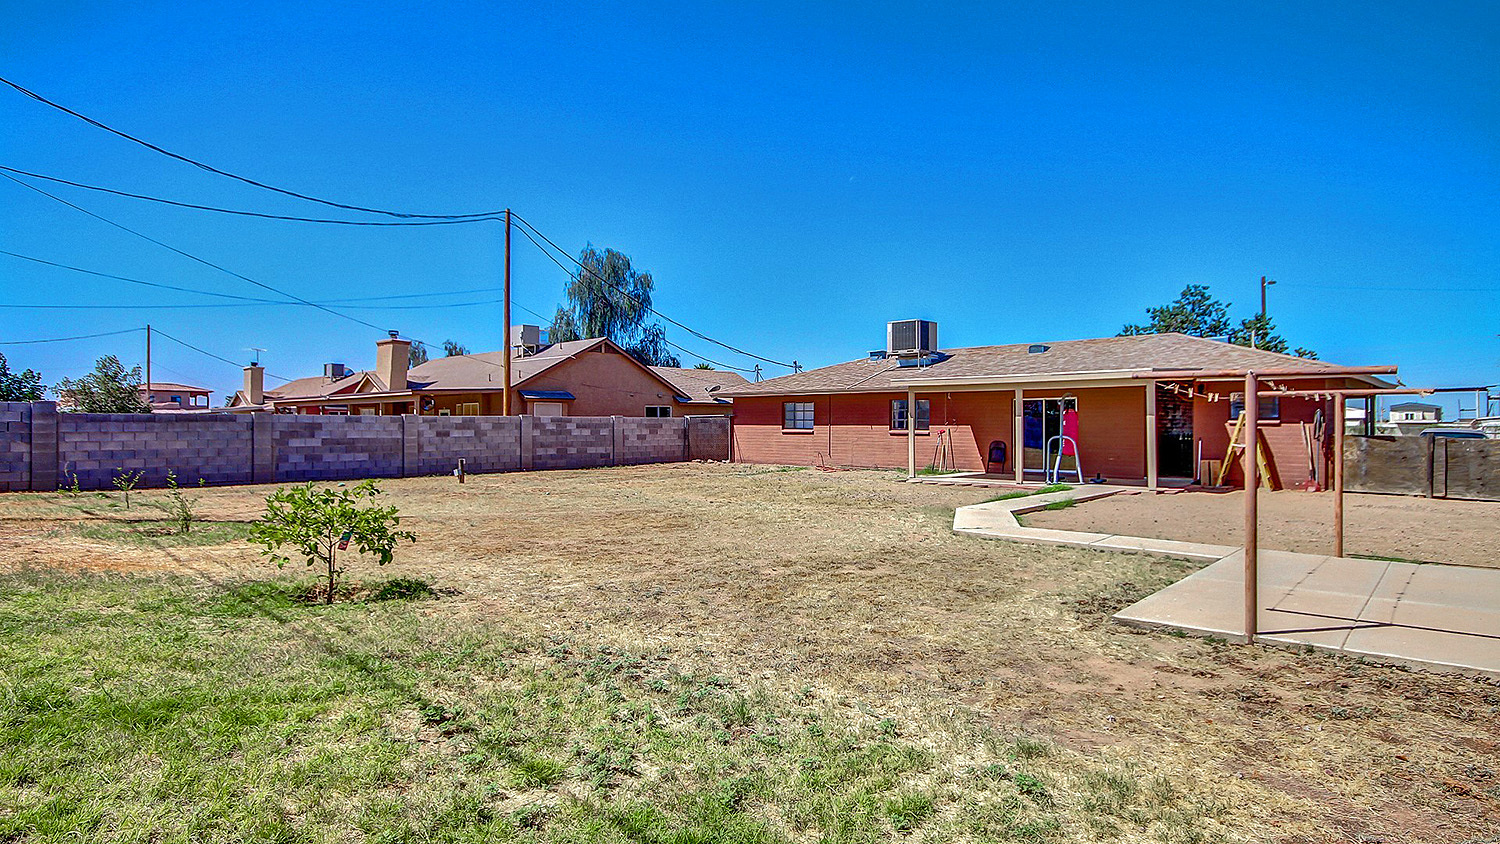 23 S Elmont Dr, Apache Junction, AZ 85120